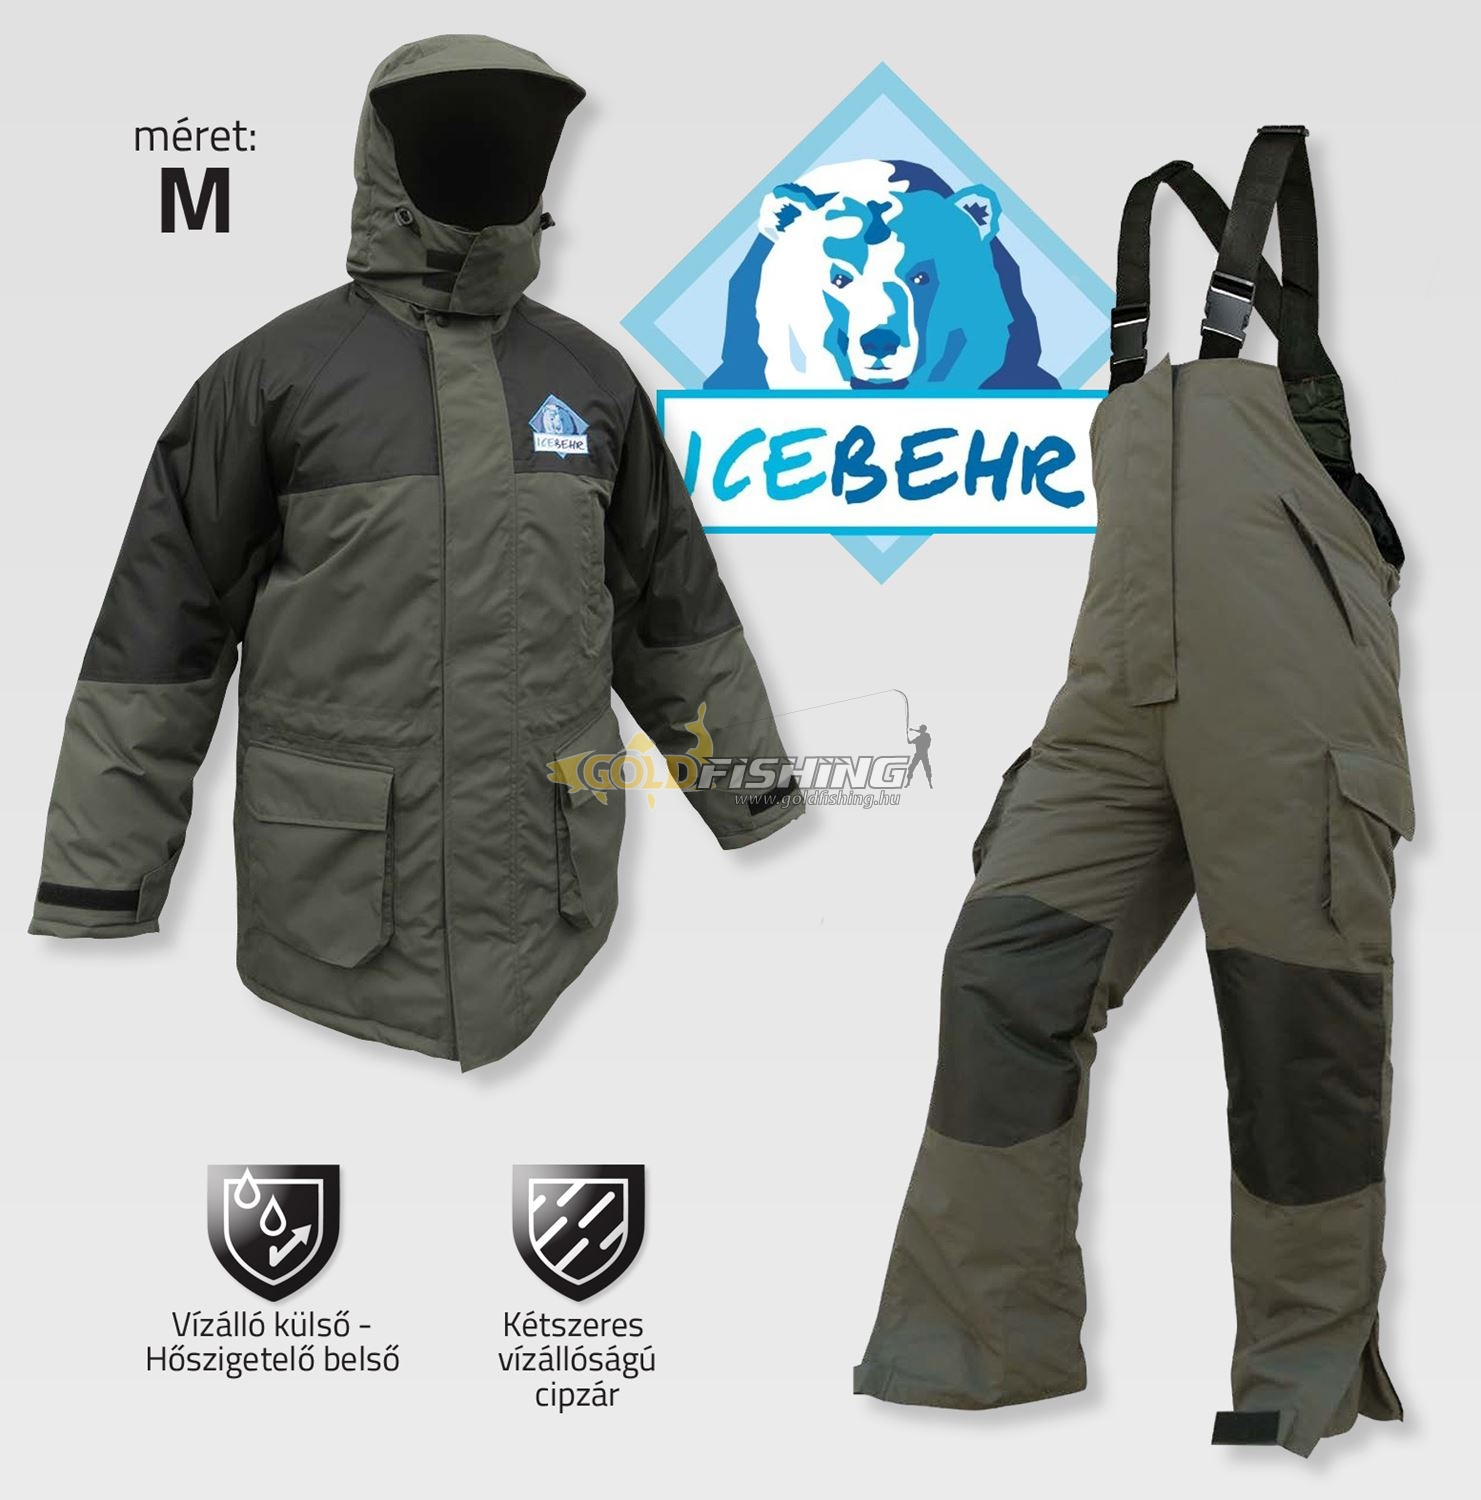 BEHR, IceBehr Extreme thermoruha  M